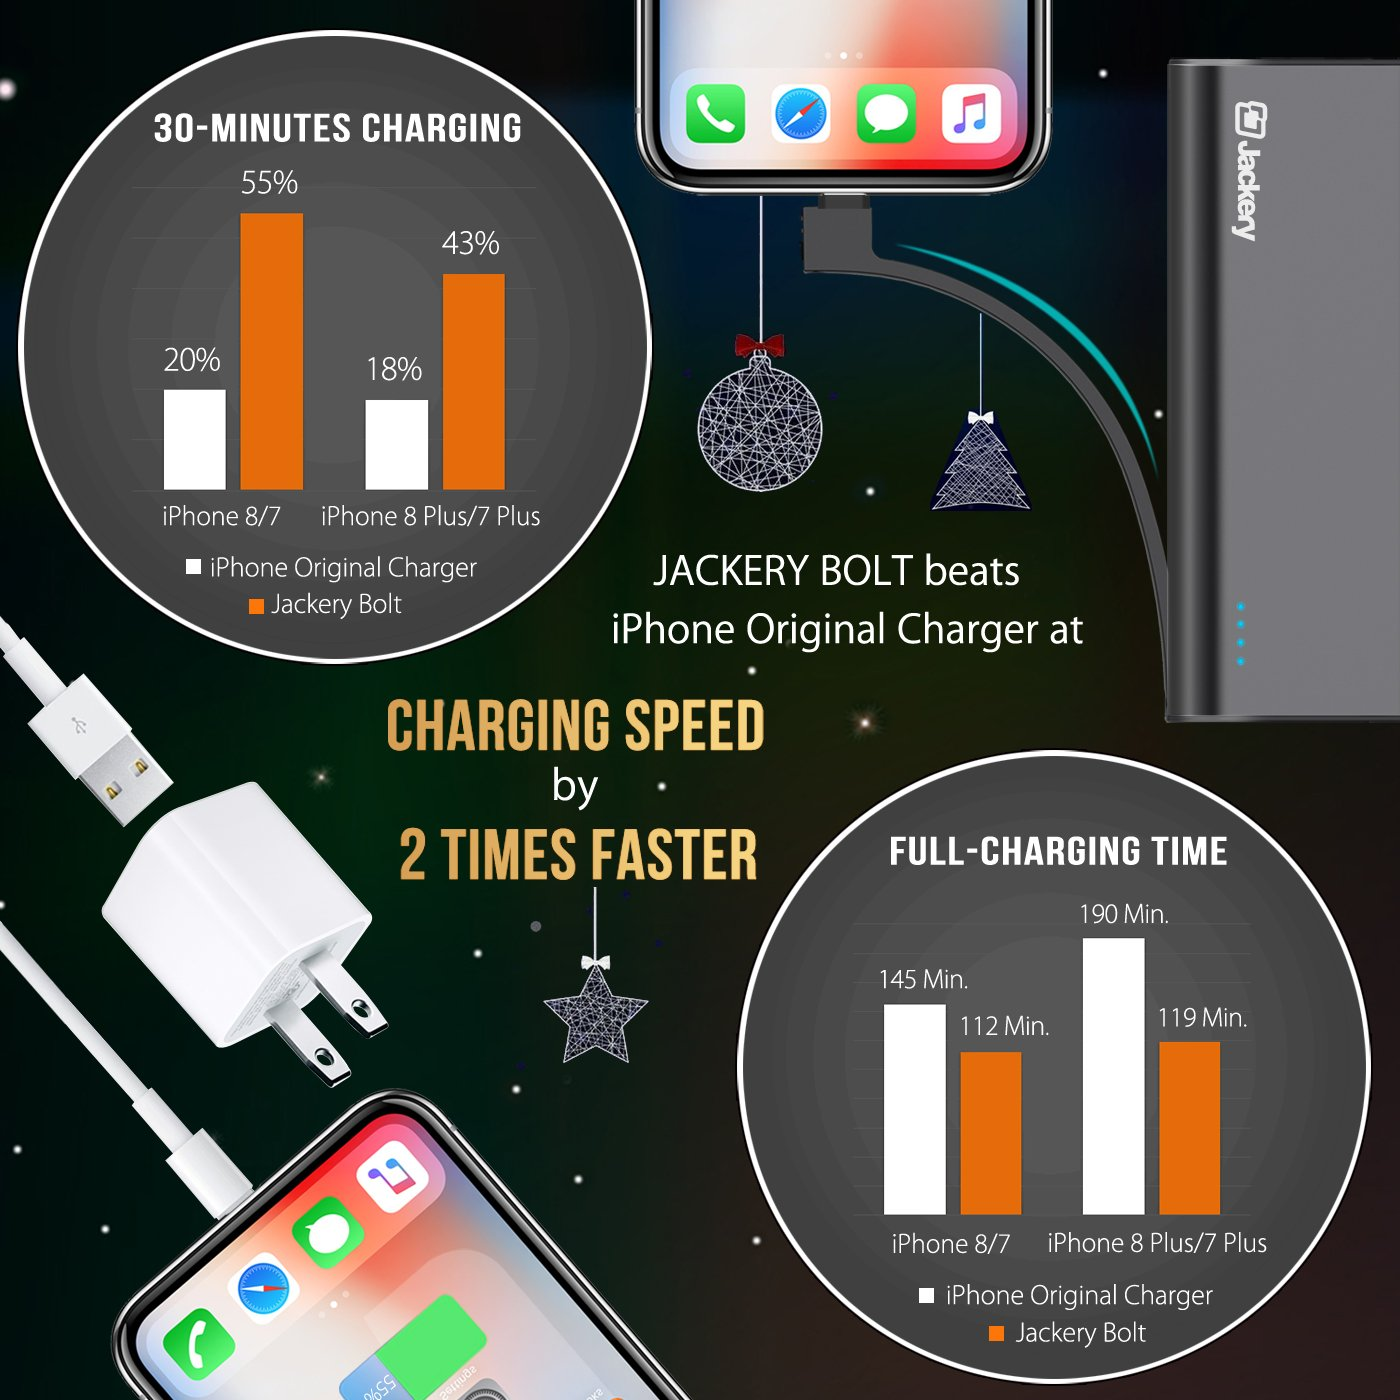 Jackery Bolt 10050mAh Power Bank, Portable Charger with Built-in [MFi certified] Lightning Cable External Battery Pack for iPhone X, iPhone 8/8Plus etc, TWICE as FAST as Original iPhone Charger by Jackery (Image #4)